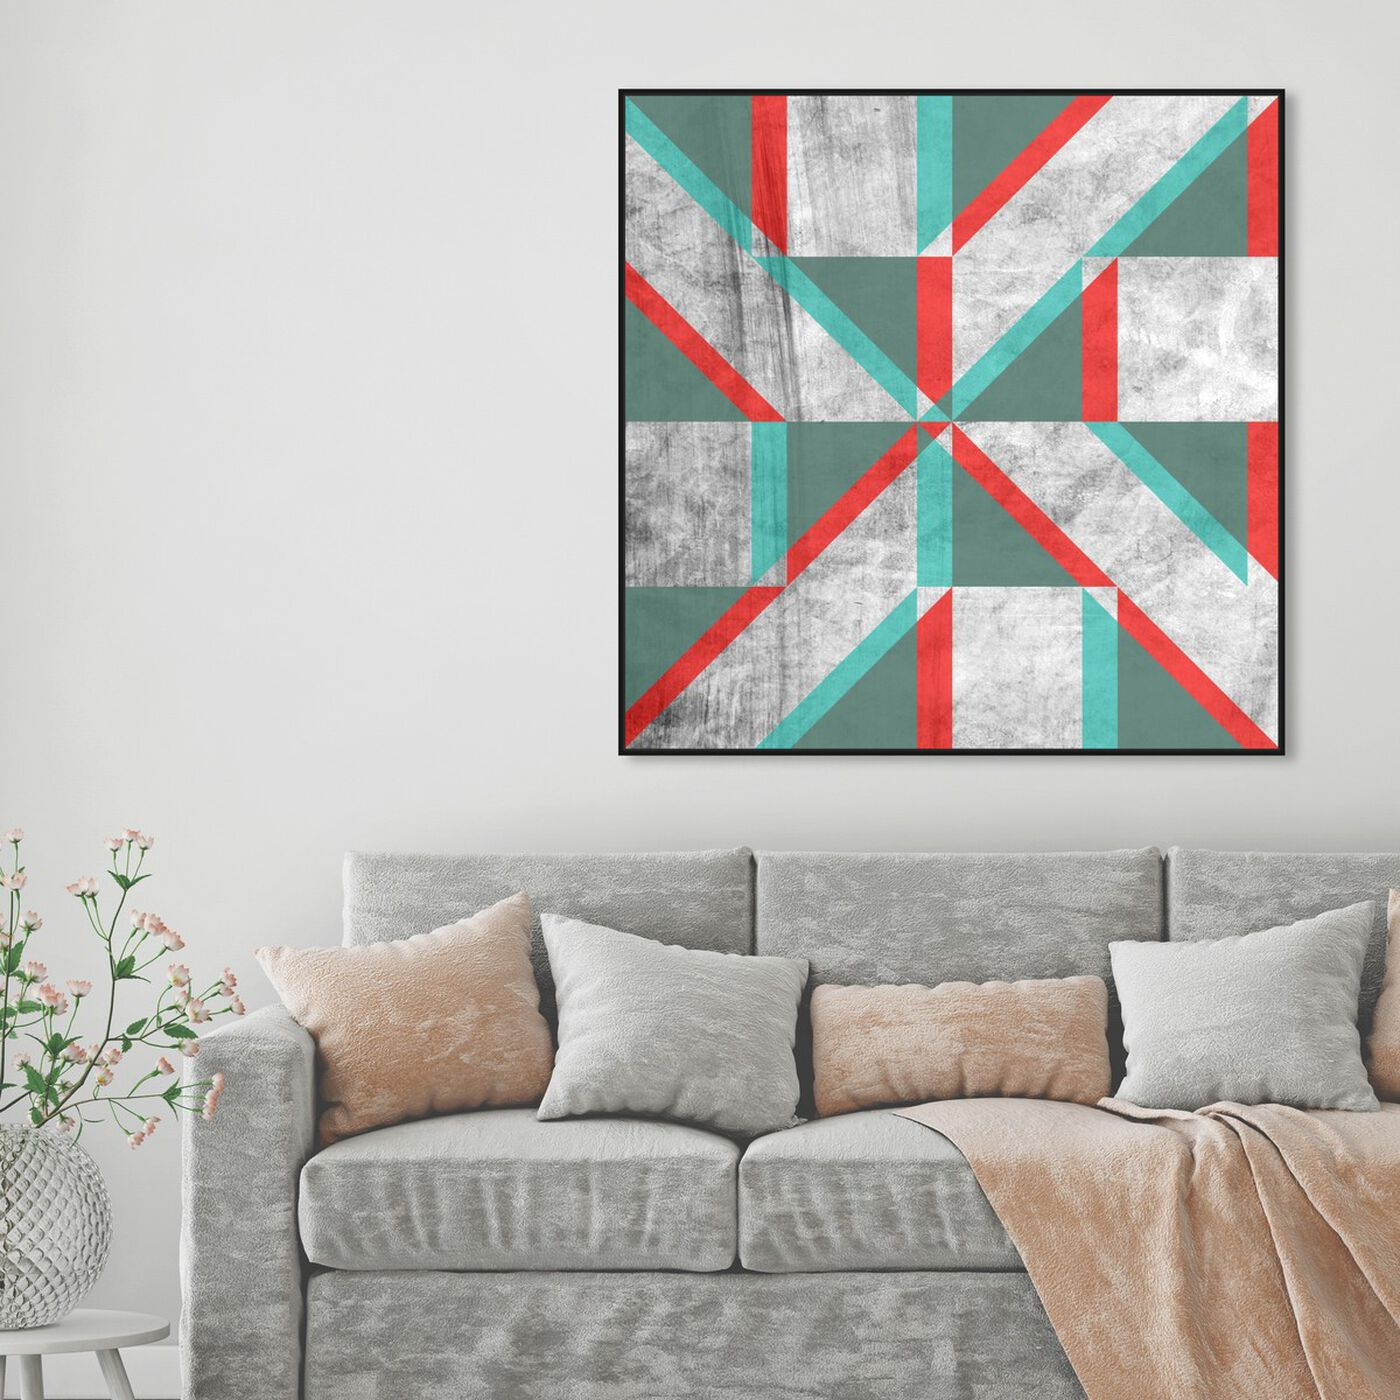 Hanging view of Falling Shape featuring abstract and geometric art.